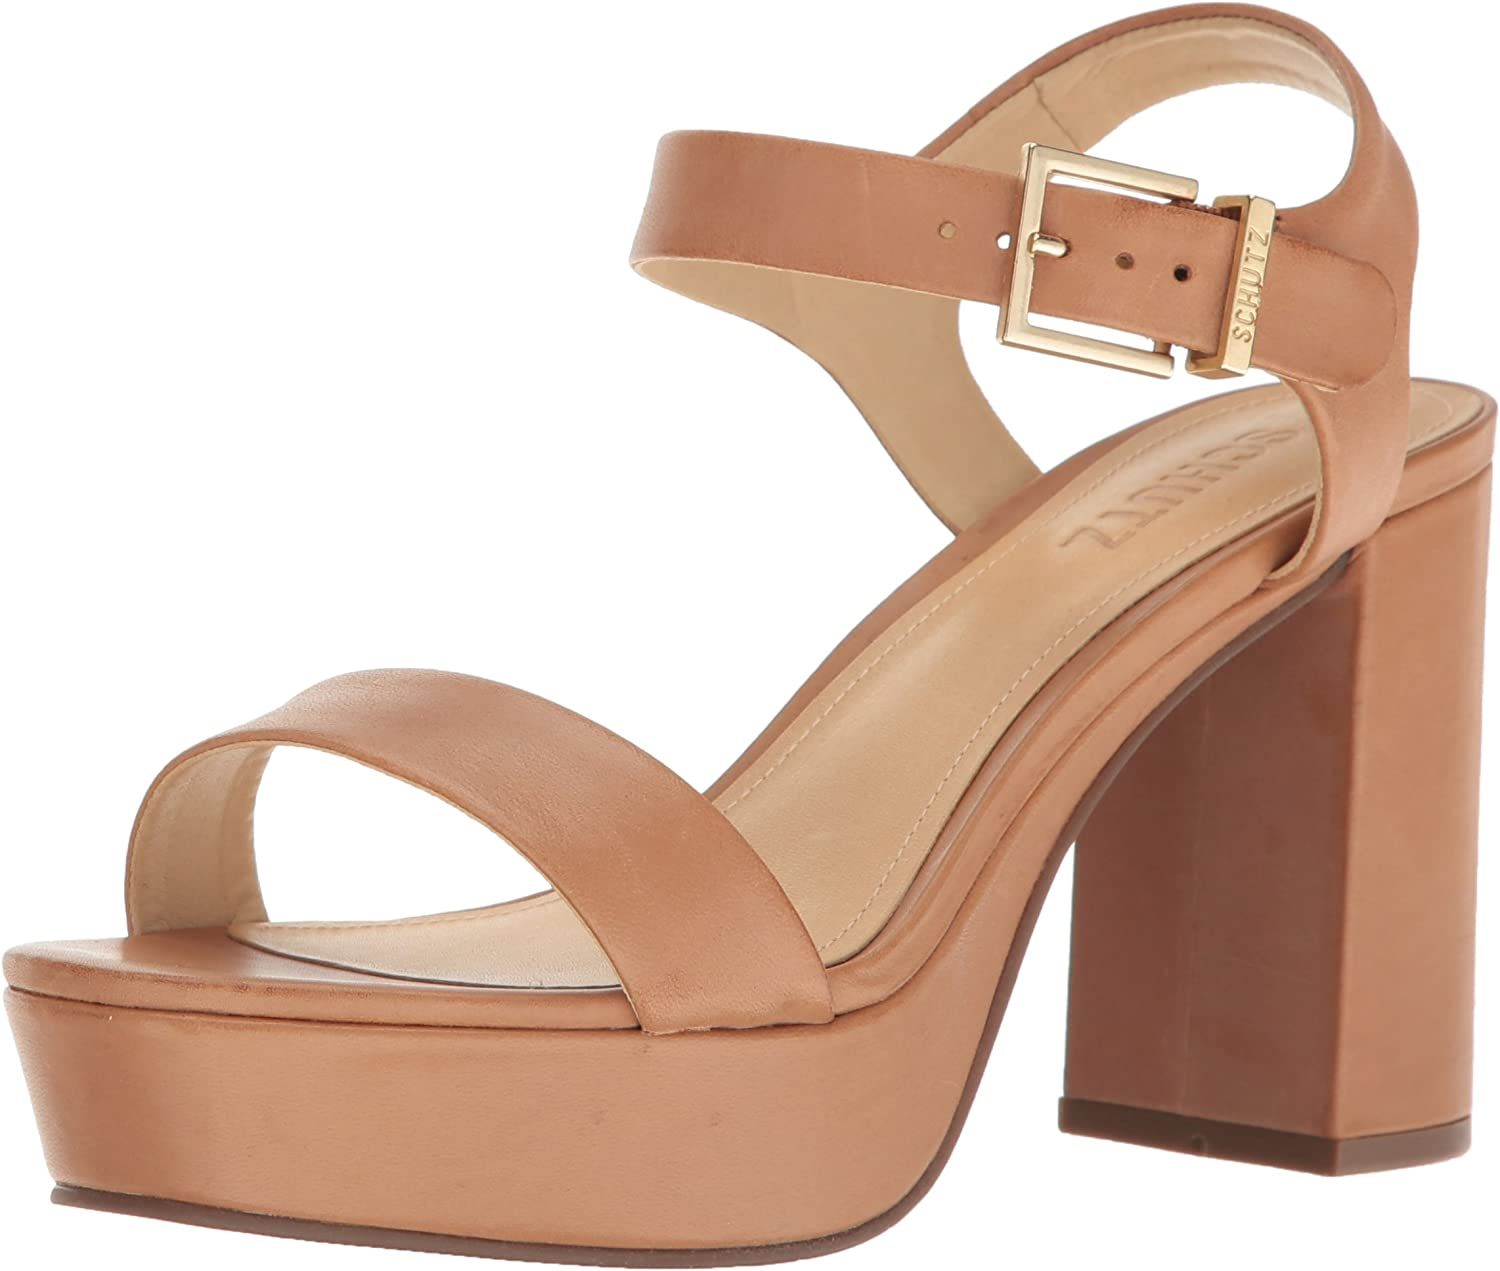 Schutz Womens Rhenda Platform Dress Sandal